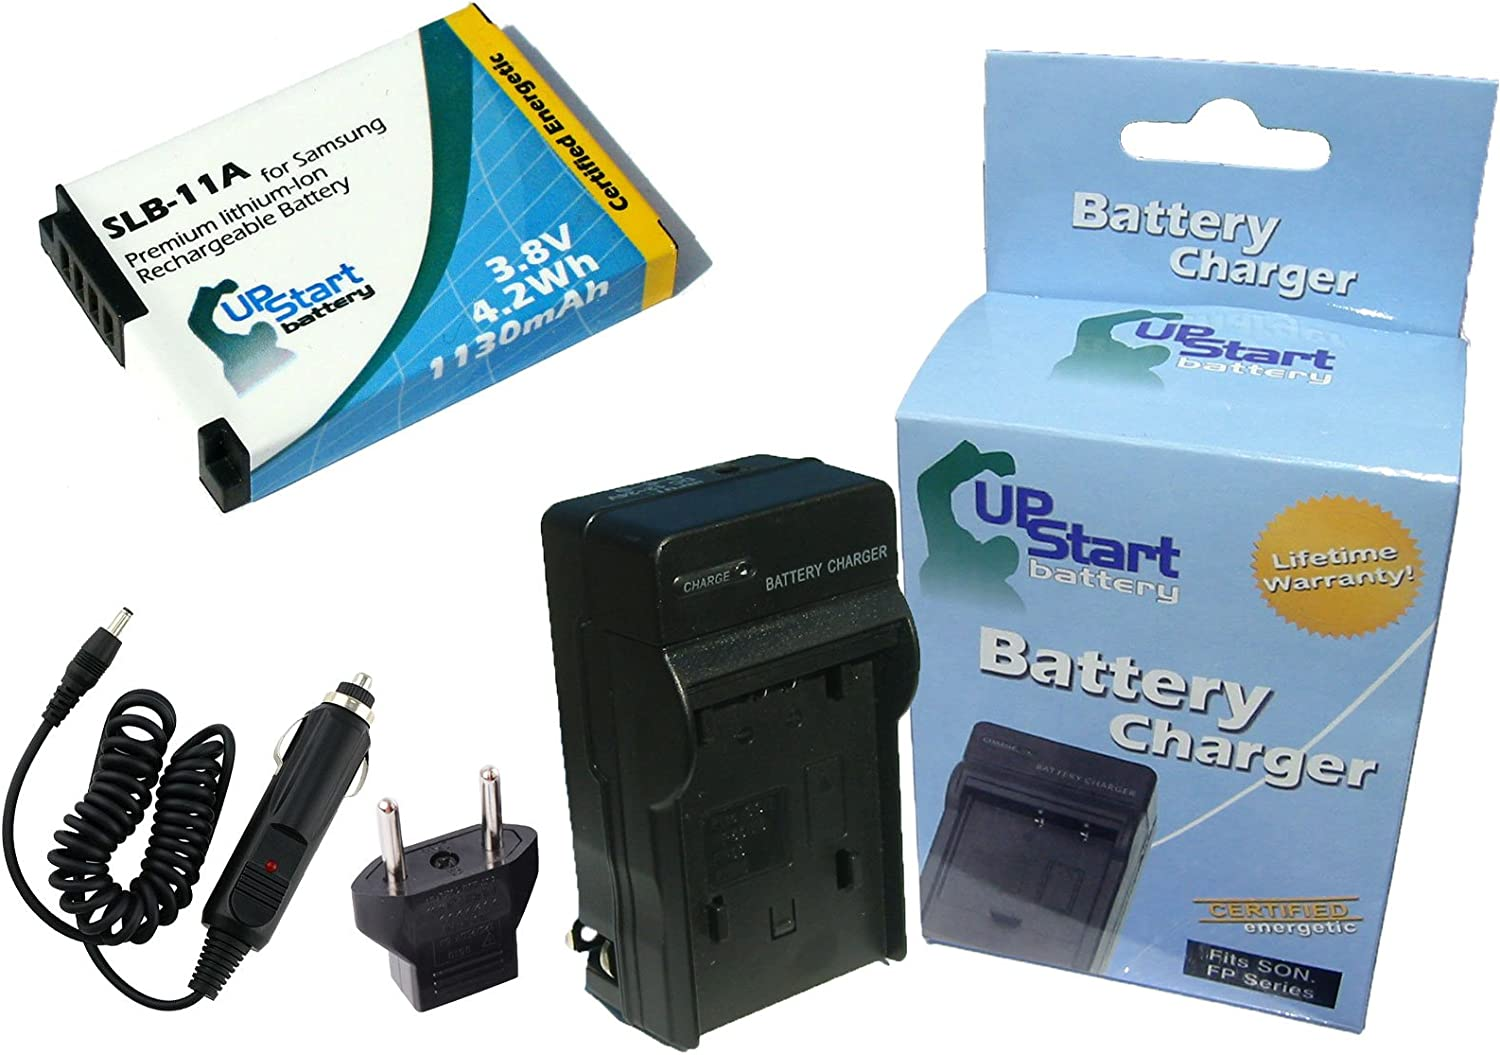 Compatible with Samsung SLB-11A Digital Camera Batteries and Chargers 1130mAh 3.8V Lithium-Ion Replacement for Samsung HZ50W Battery and Charger with Car Plug and EU Adapter